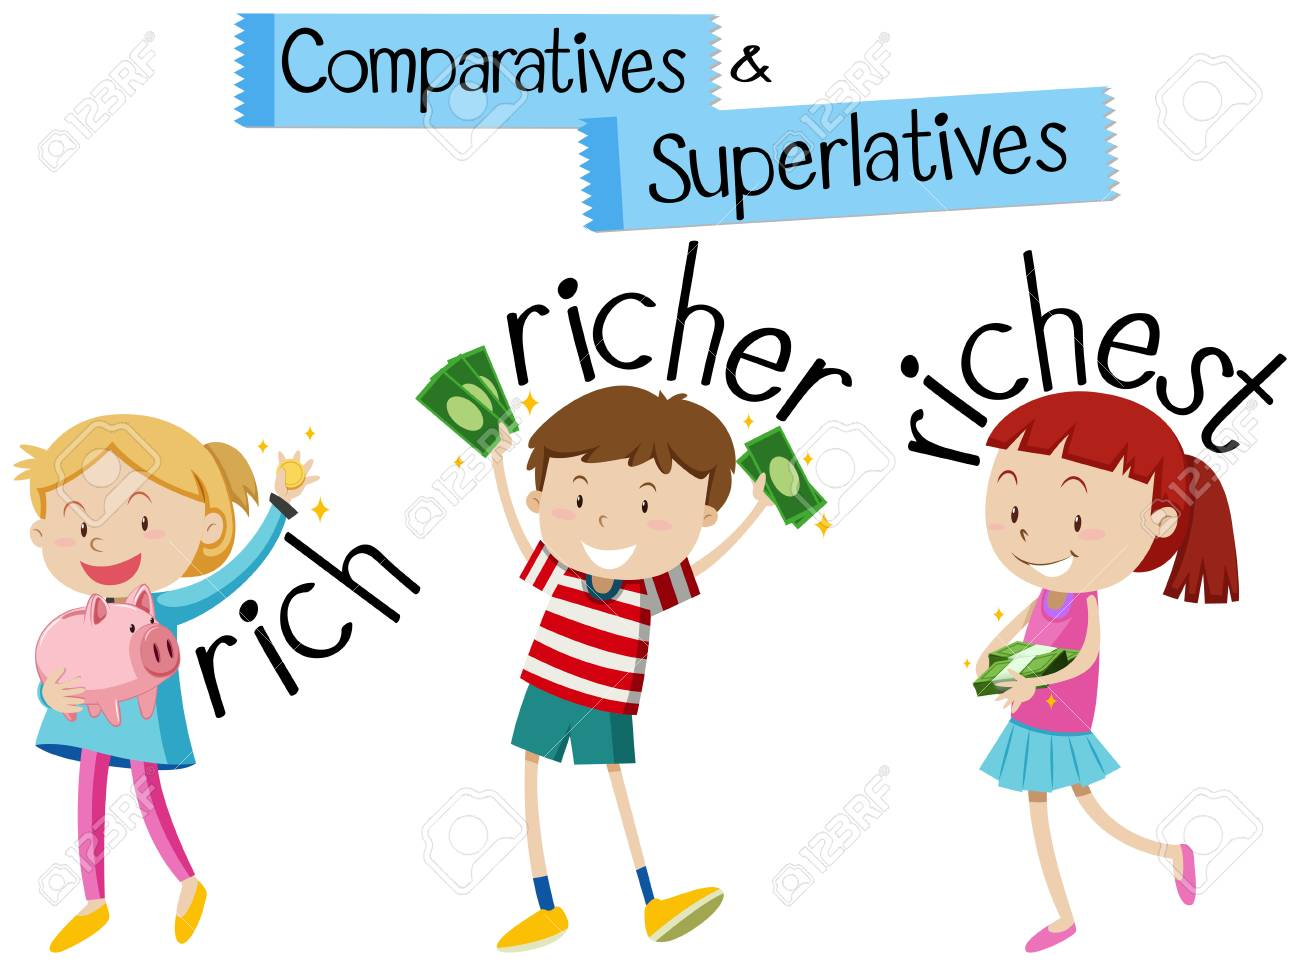 English grammar for comparatives and superlatives with kids and..